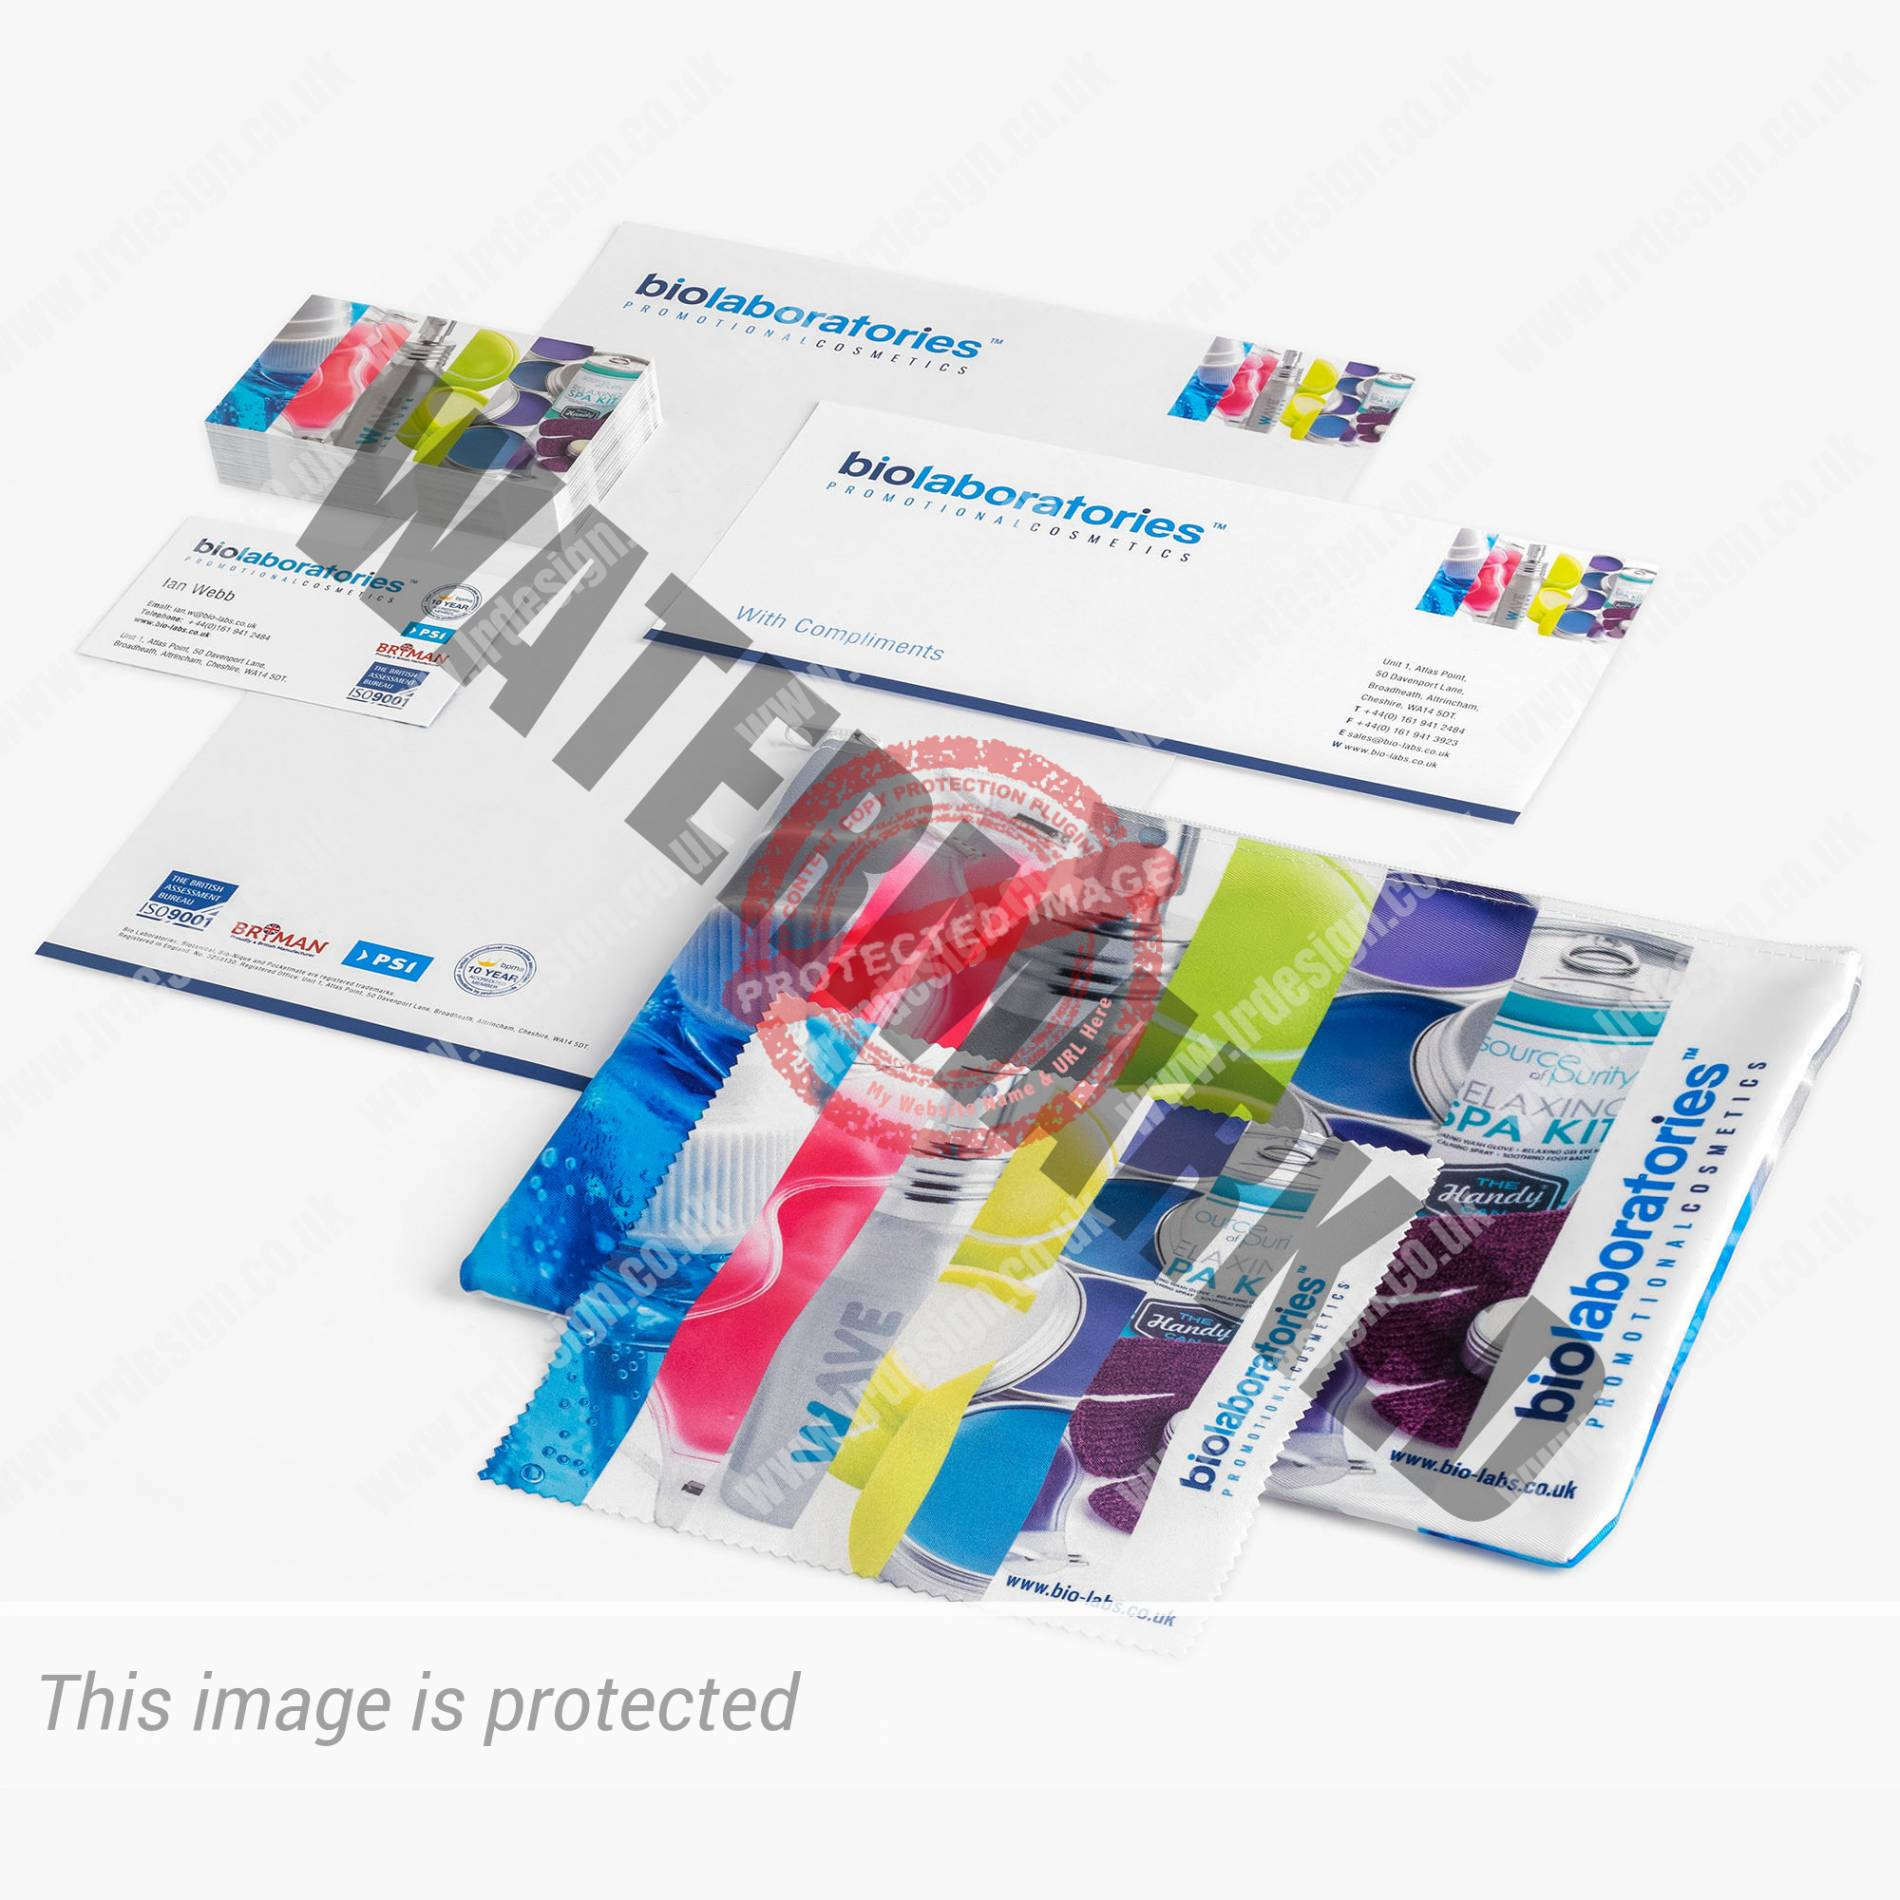 Stationary and incentive products for Bio Laboratories promotional cosmetics.